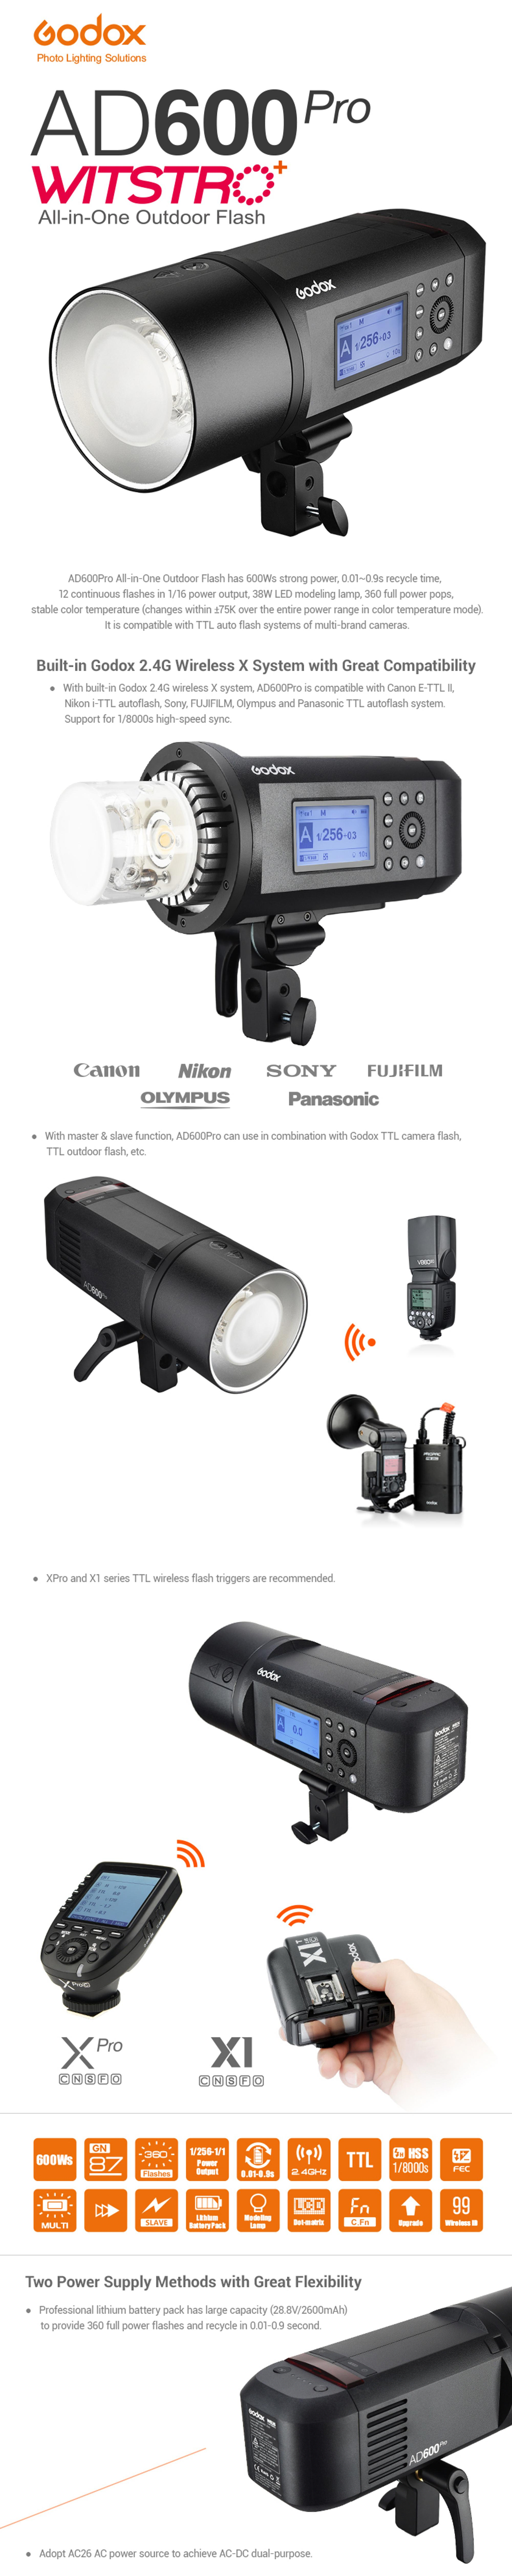 Godox AD600Pro AD600 Pro HSS 1/8000s TTL 2.4G Wireless Strobe Outdoor Flash Photography lights for DSLR camera